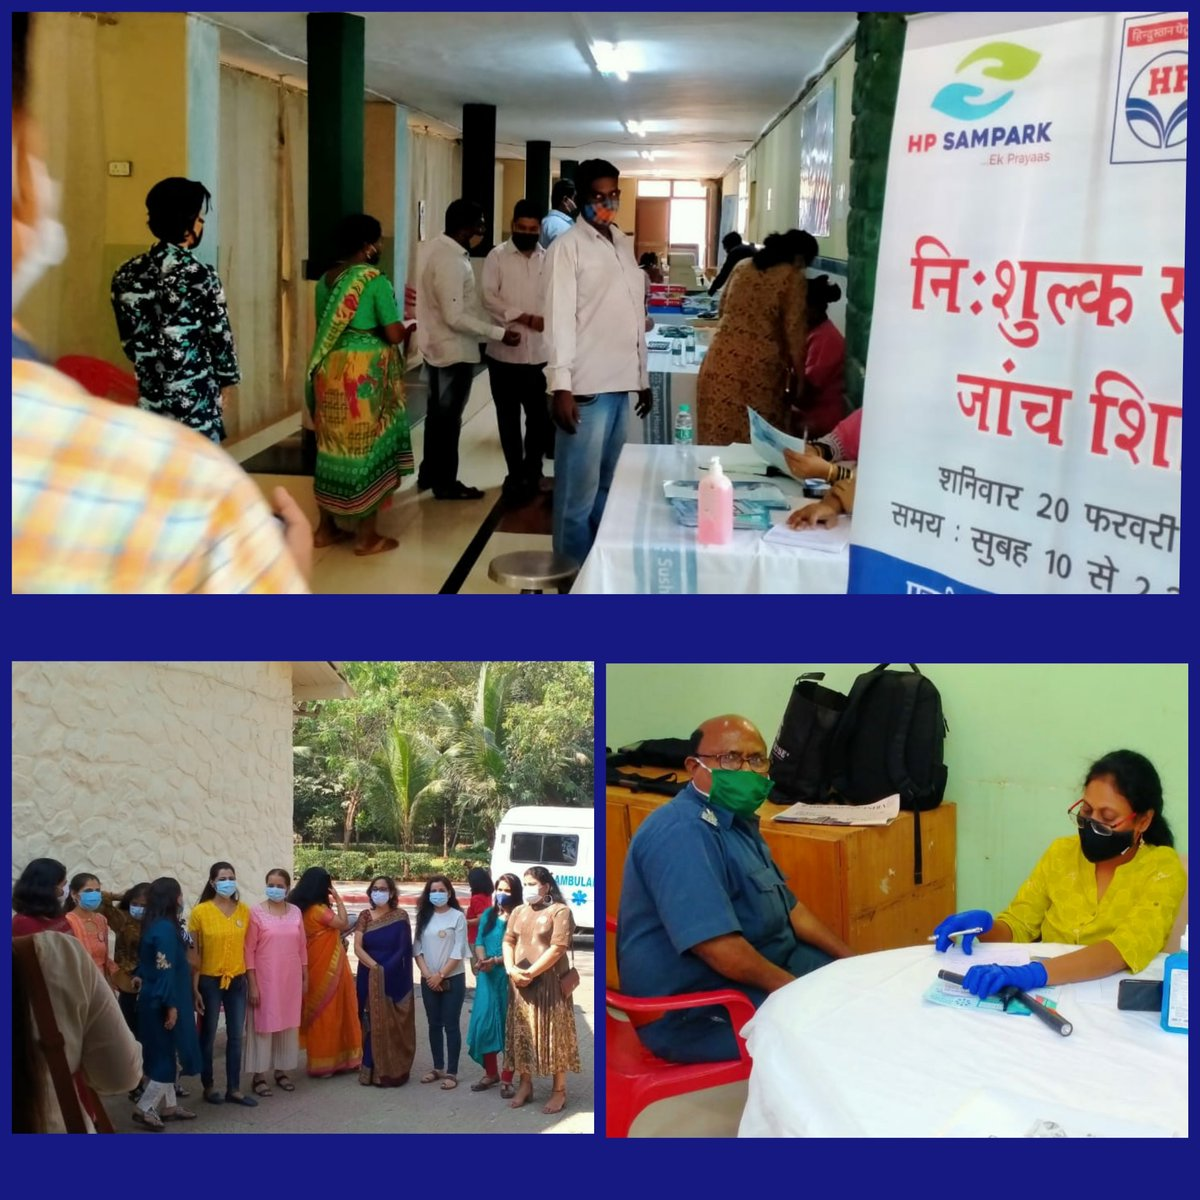 In these testing times of pandemic, HP Shakti Ladies Club of #HPCL  recently organized a free health check-up camp for the workers in HP Nagar area, in Mumbai. Arrangements were done with the help of Sushrut Hospital, HP Sampark team & HP Nagar Admin Team  #HPCLCares #staysafe